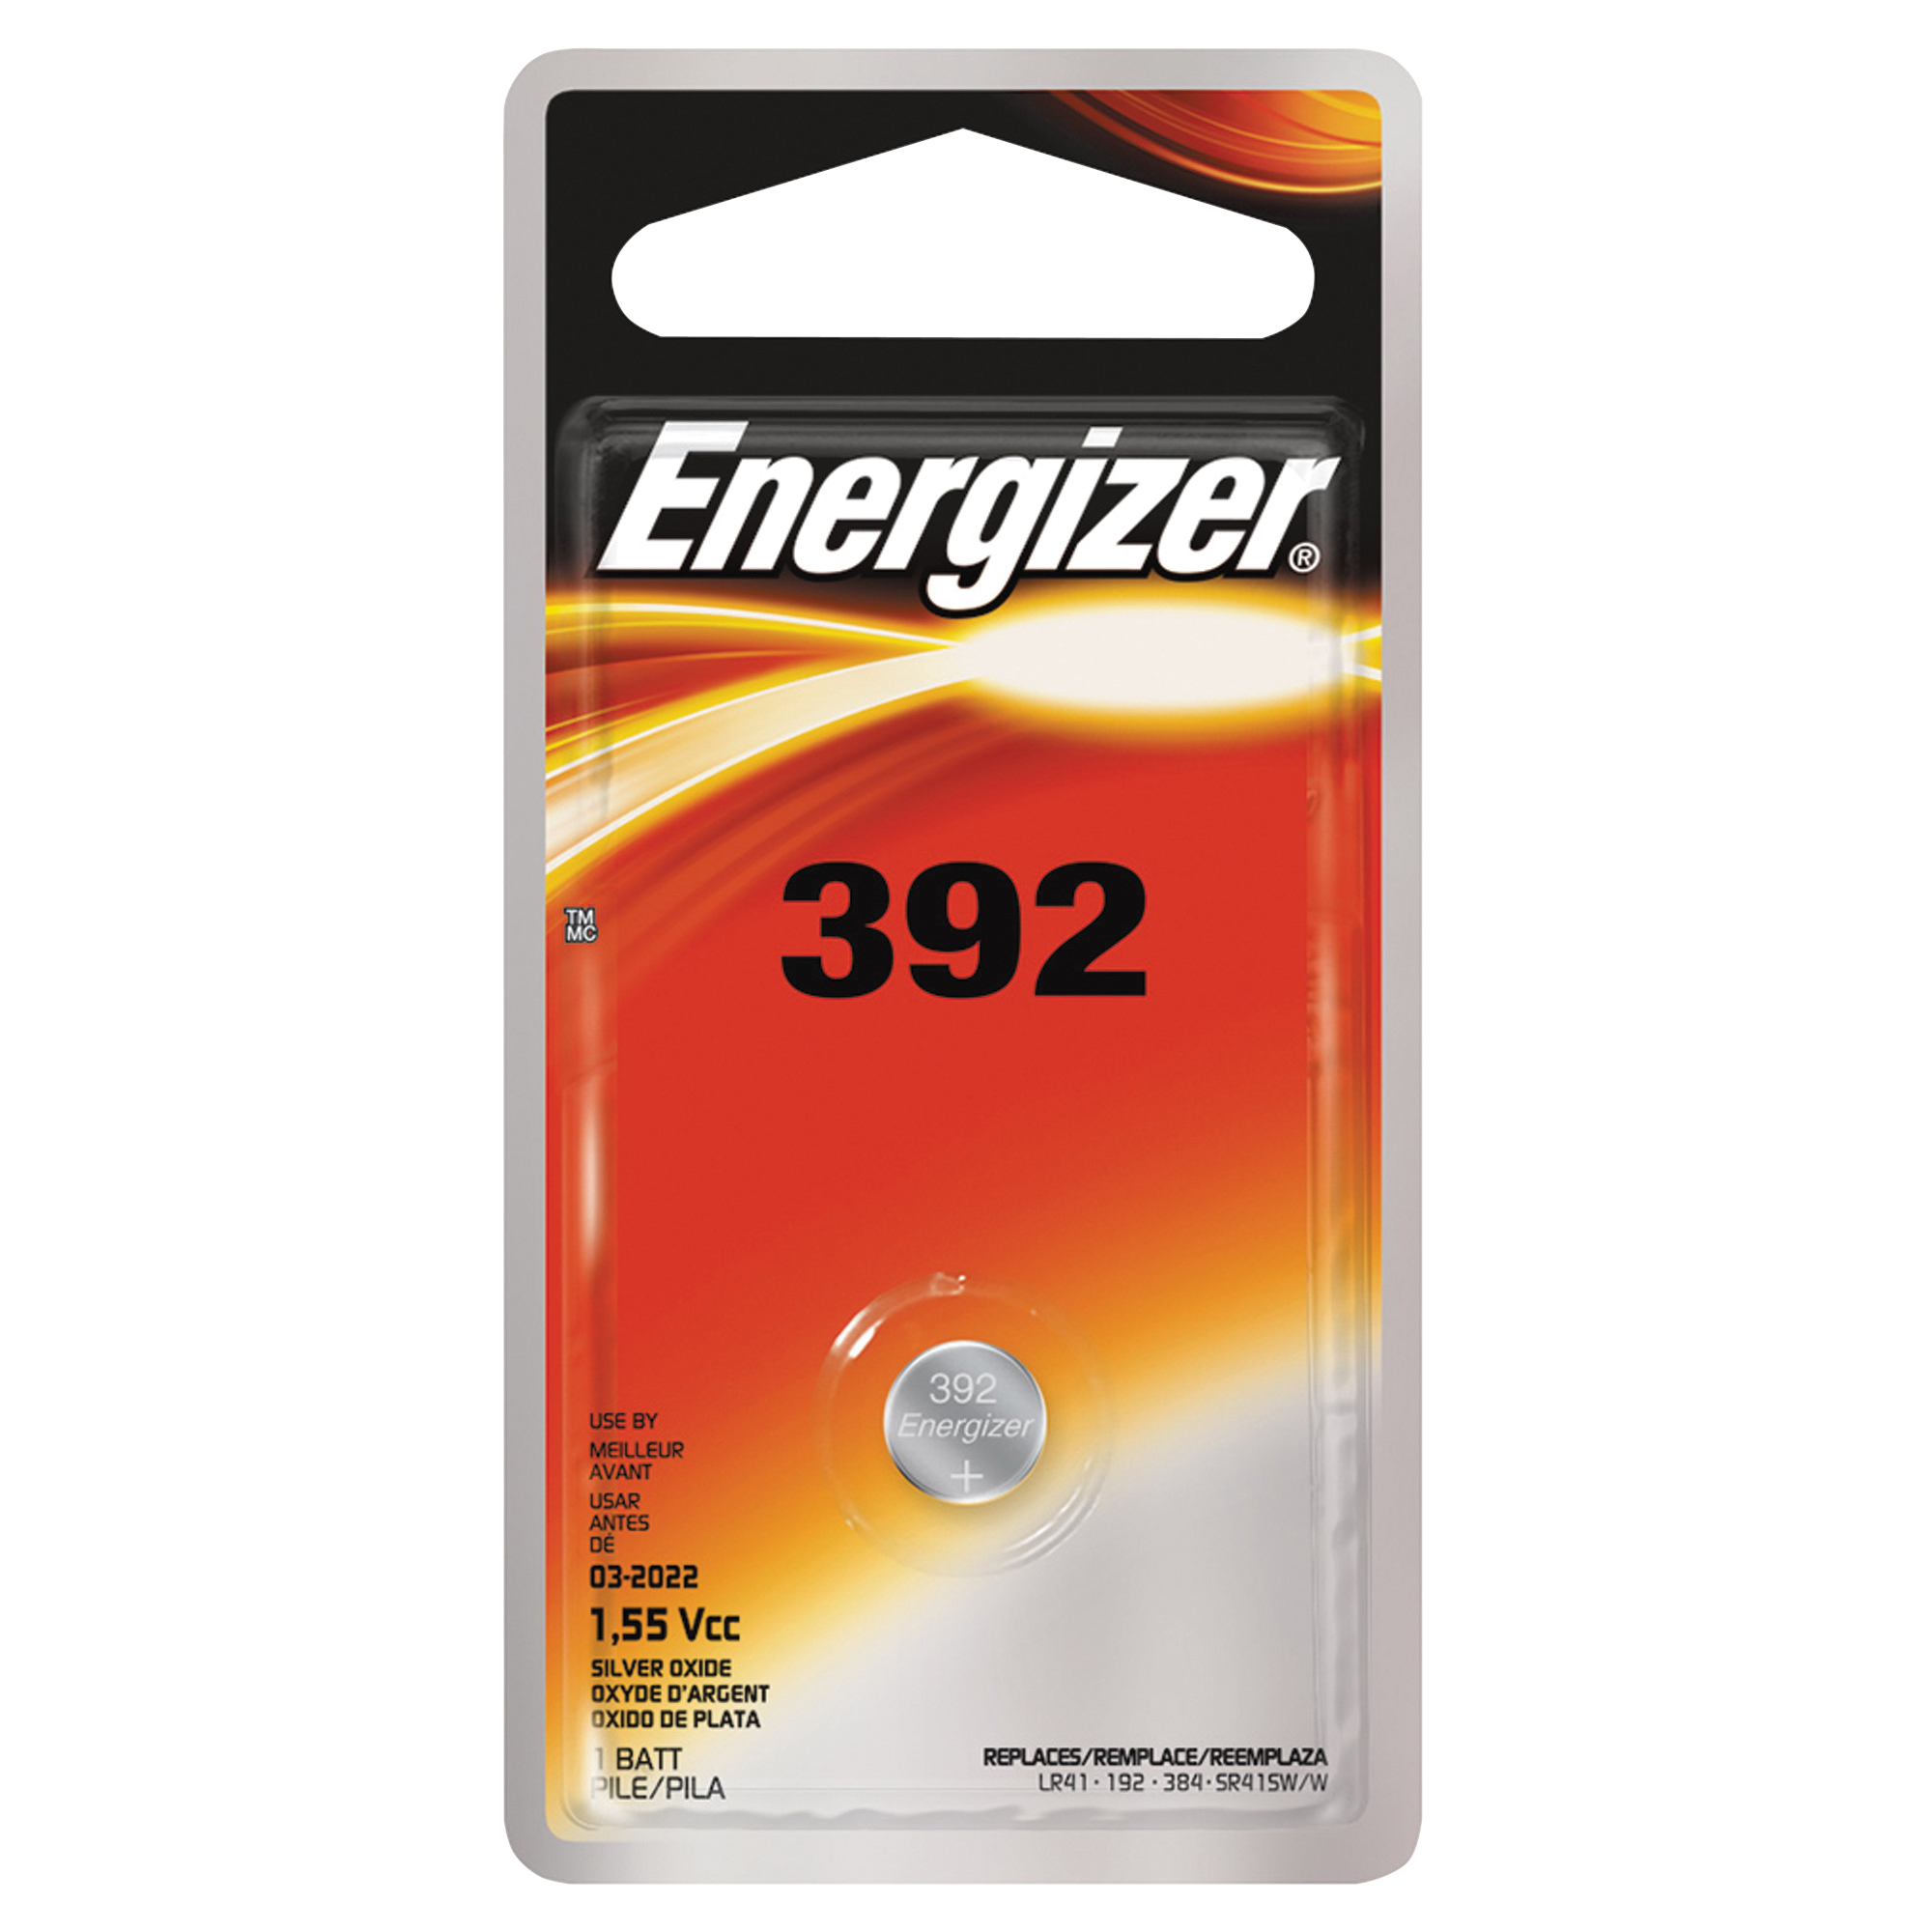 Picture of Energizer 392BPZ Coin Cell Battery, 1.5 V Battery, 44 mAh, 392 Battery, Silver Oxide